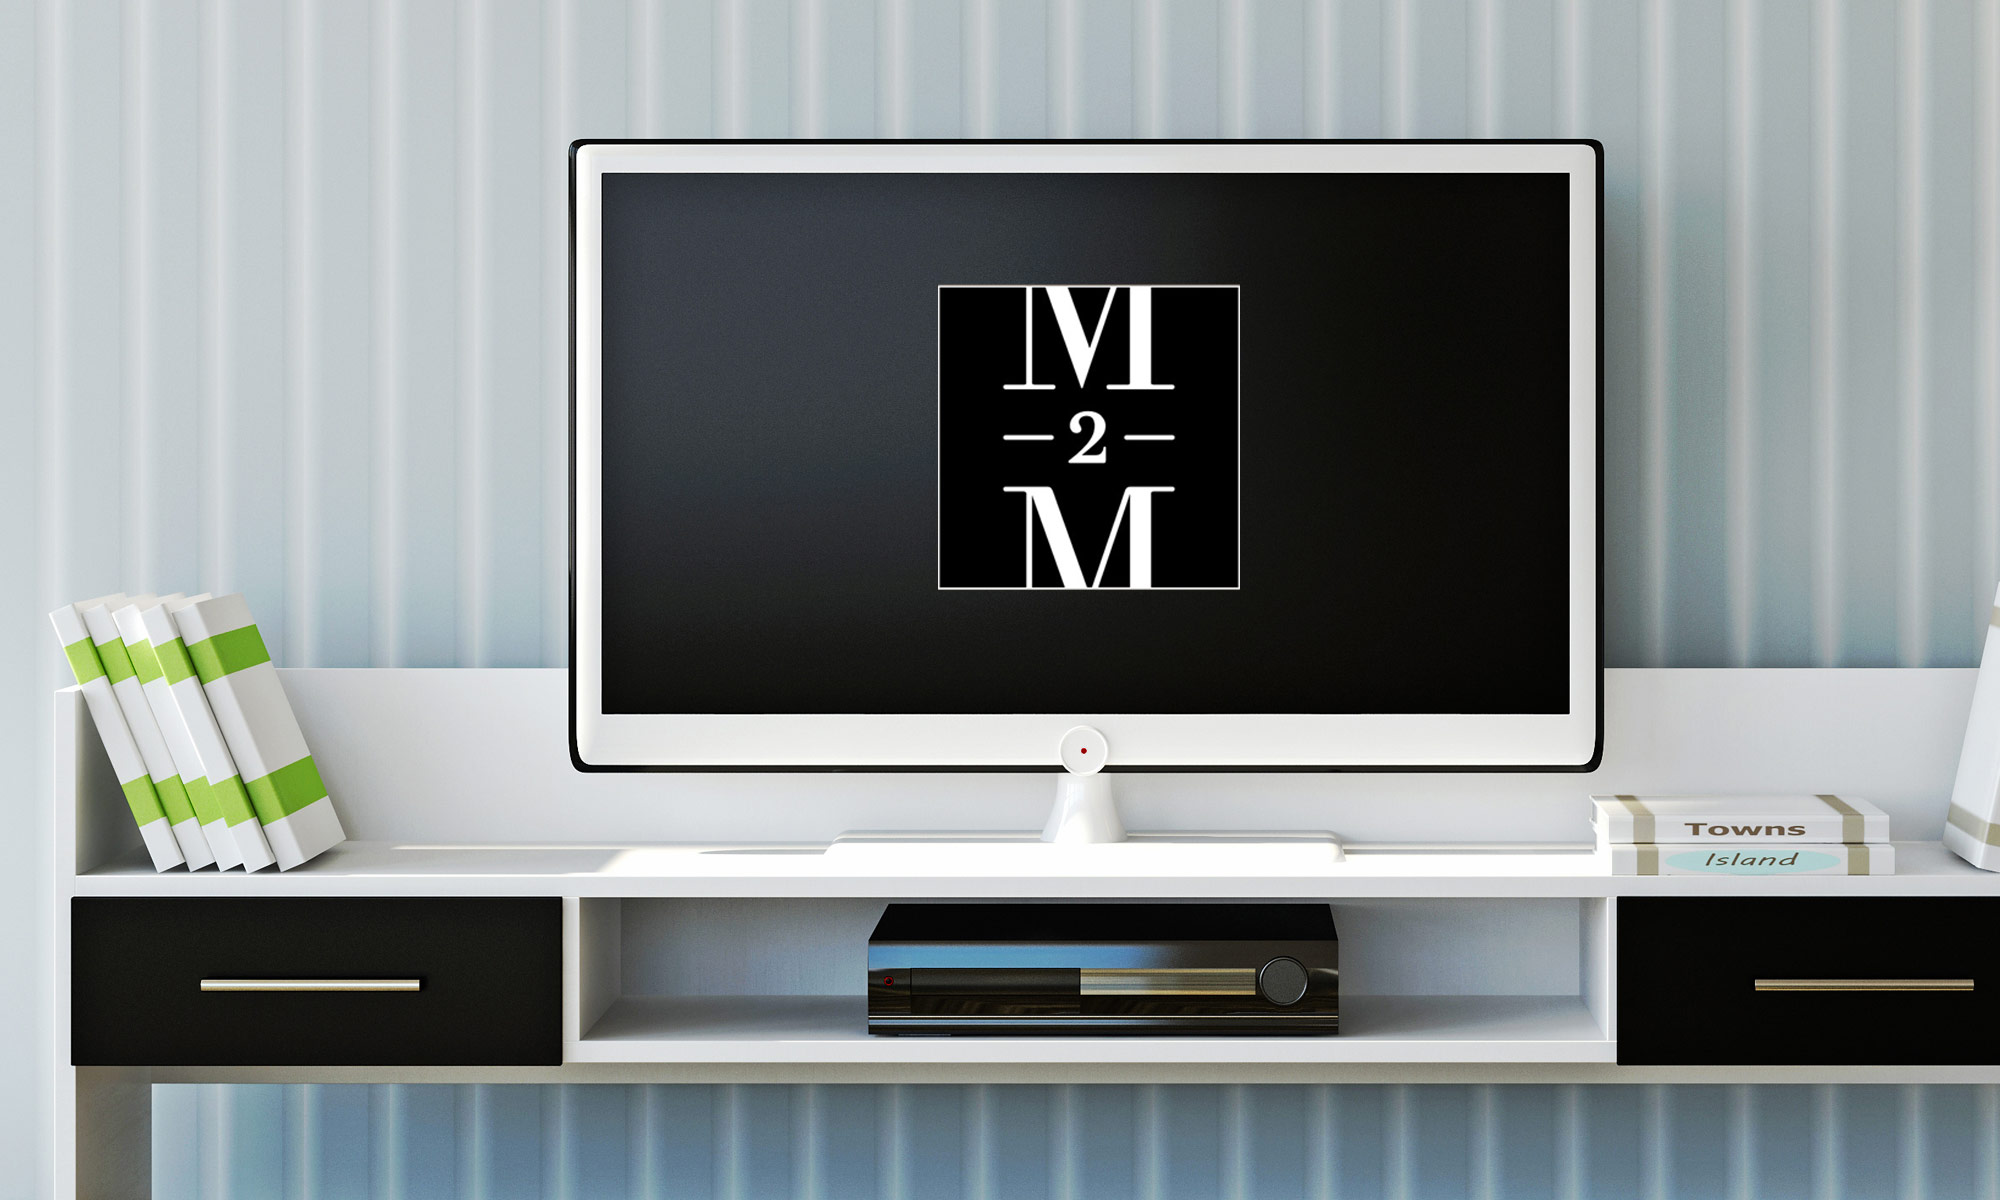 WMEIMG Launches M2M on Apple TV